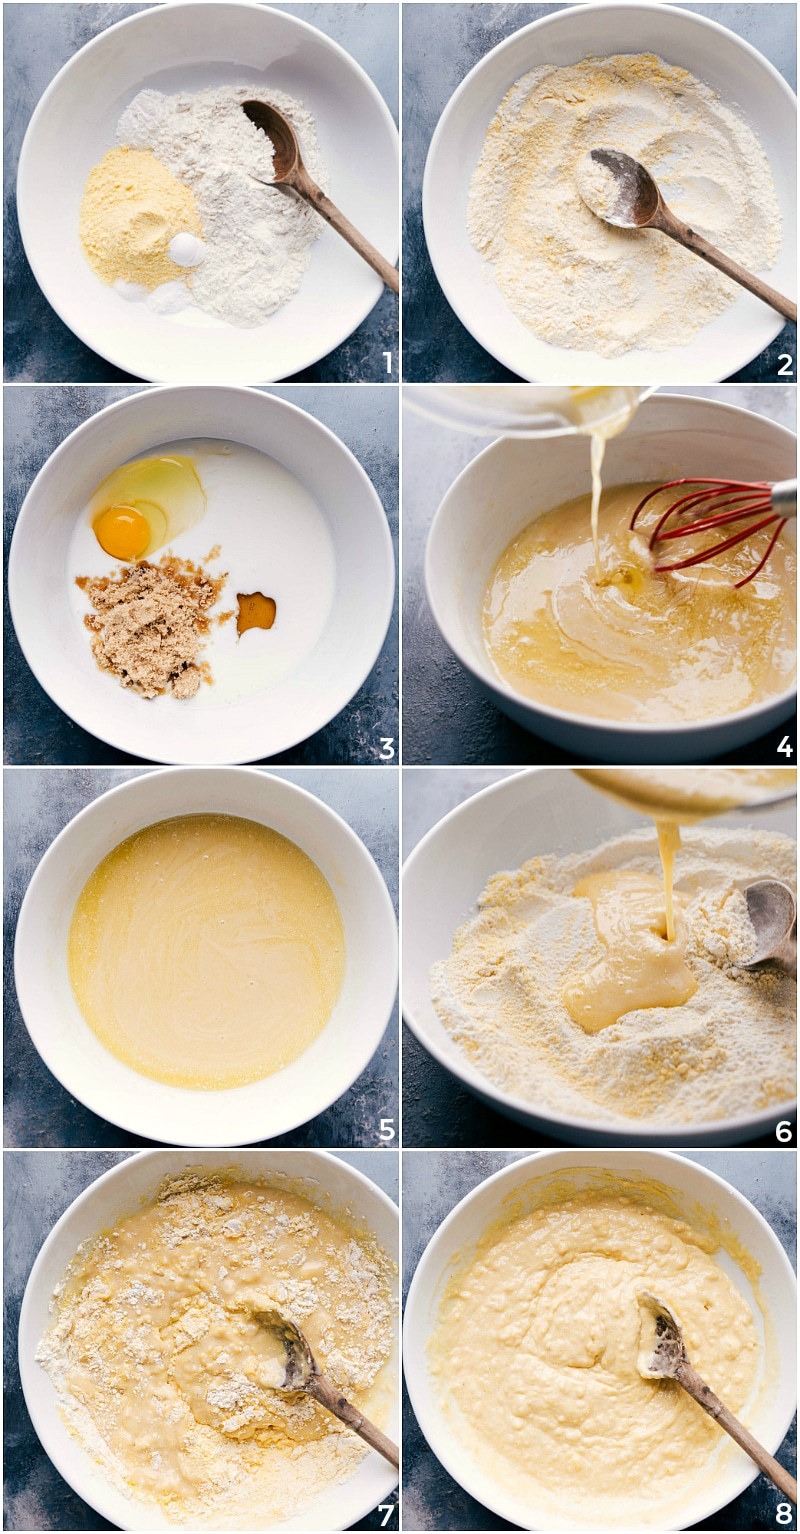 Process shots-- image of Cornbread Muffin batter being prepared: combining dry ingredients; combining wet ingredients; adding dry to wet ingredients; mixing the batter just enough to incorporate all ingredients.